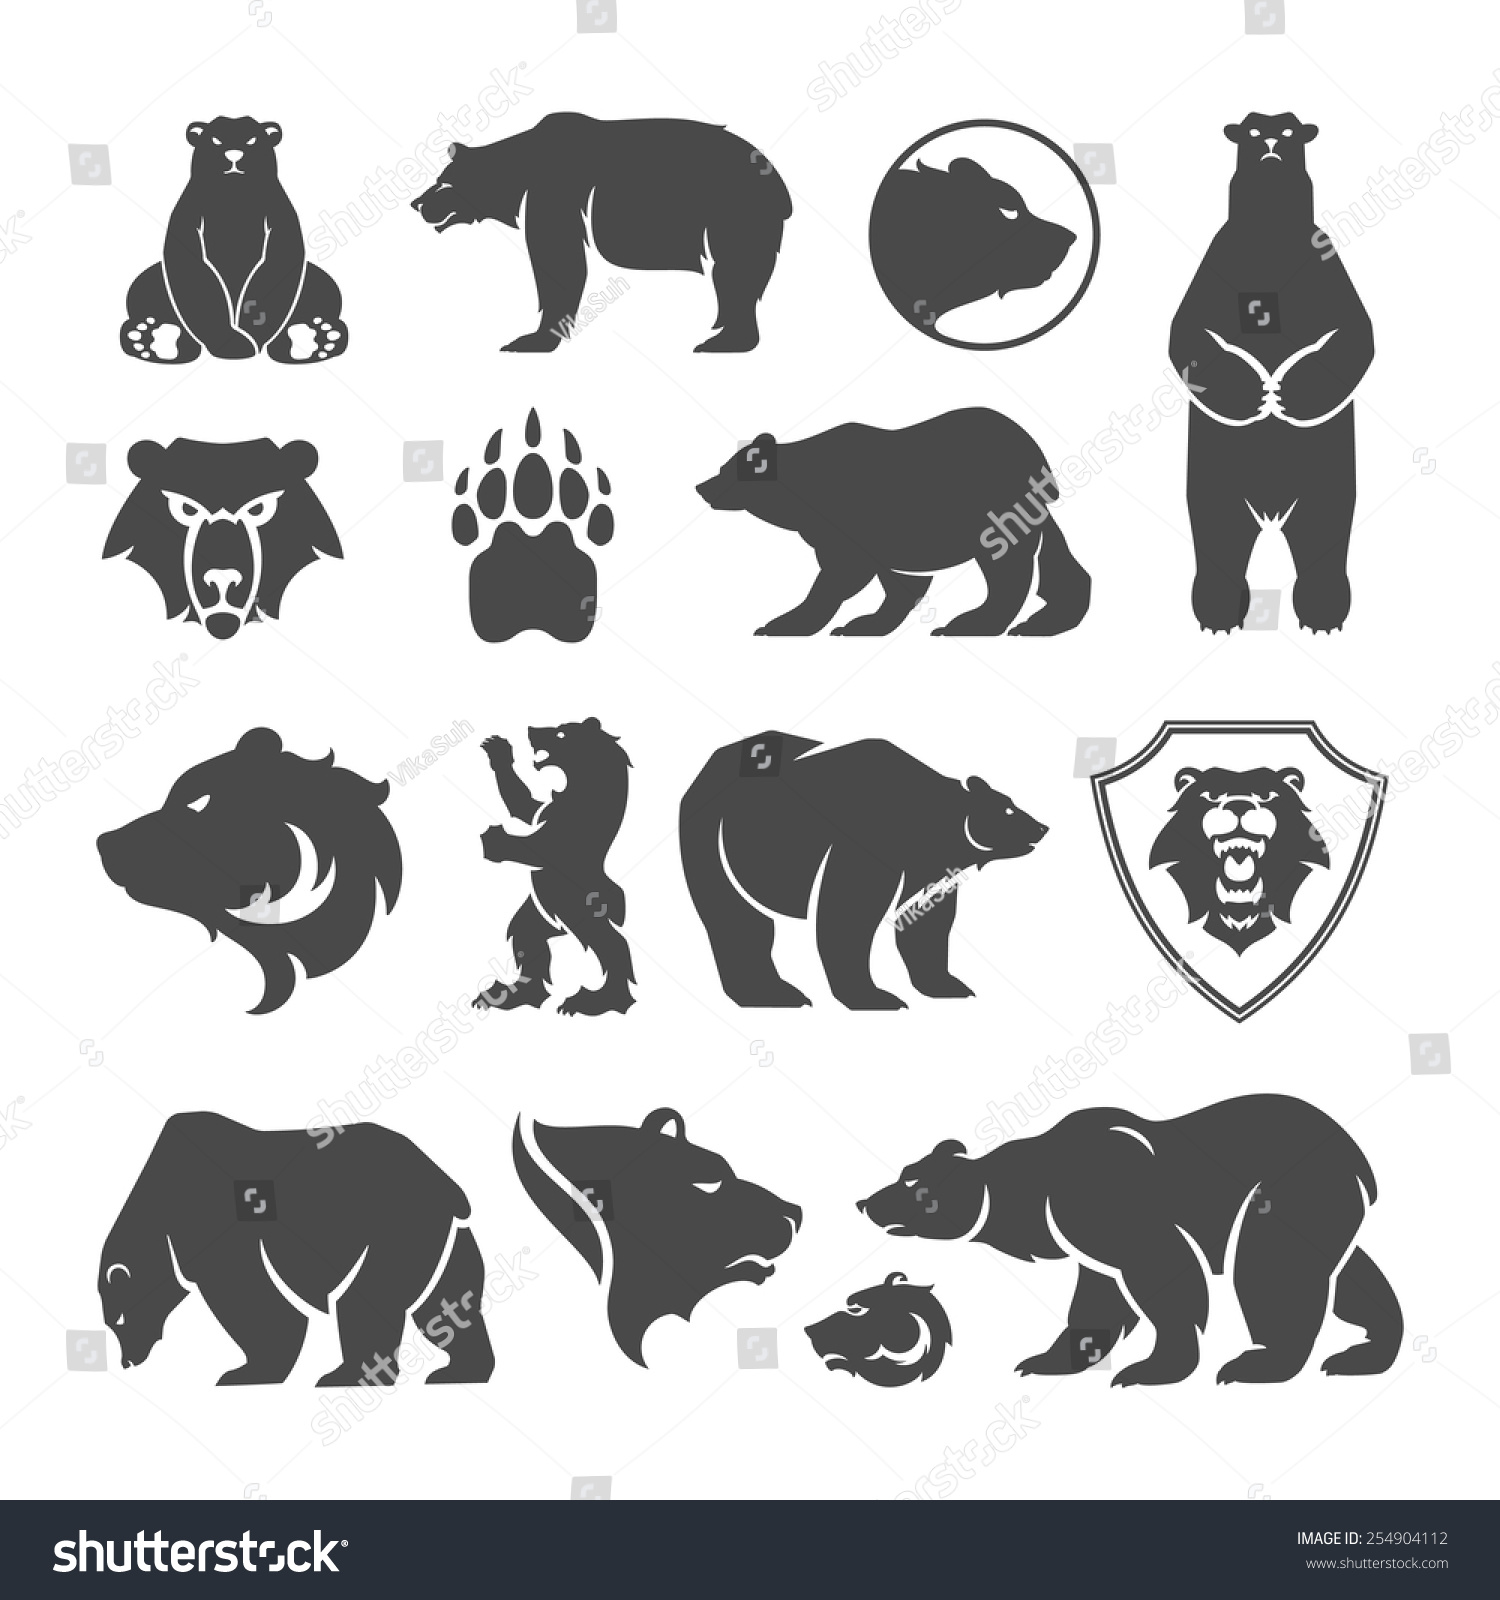 Vintage bear mascot, emblems, symbols, icons set. Can be used for T ...